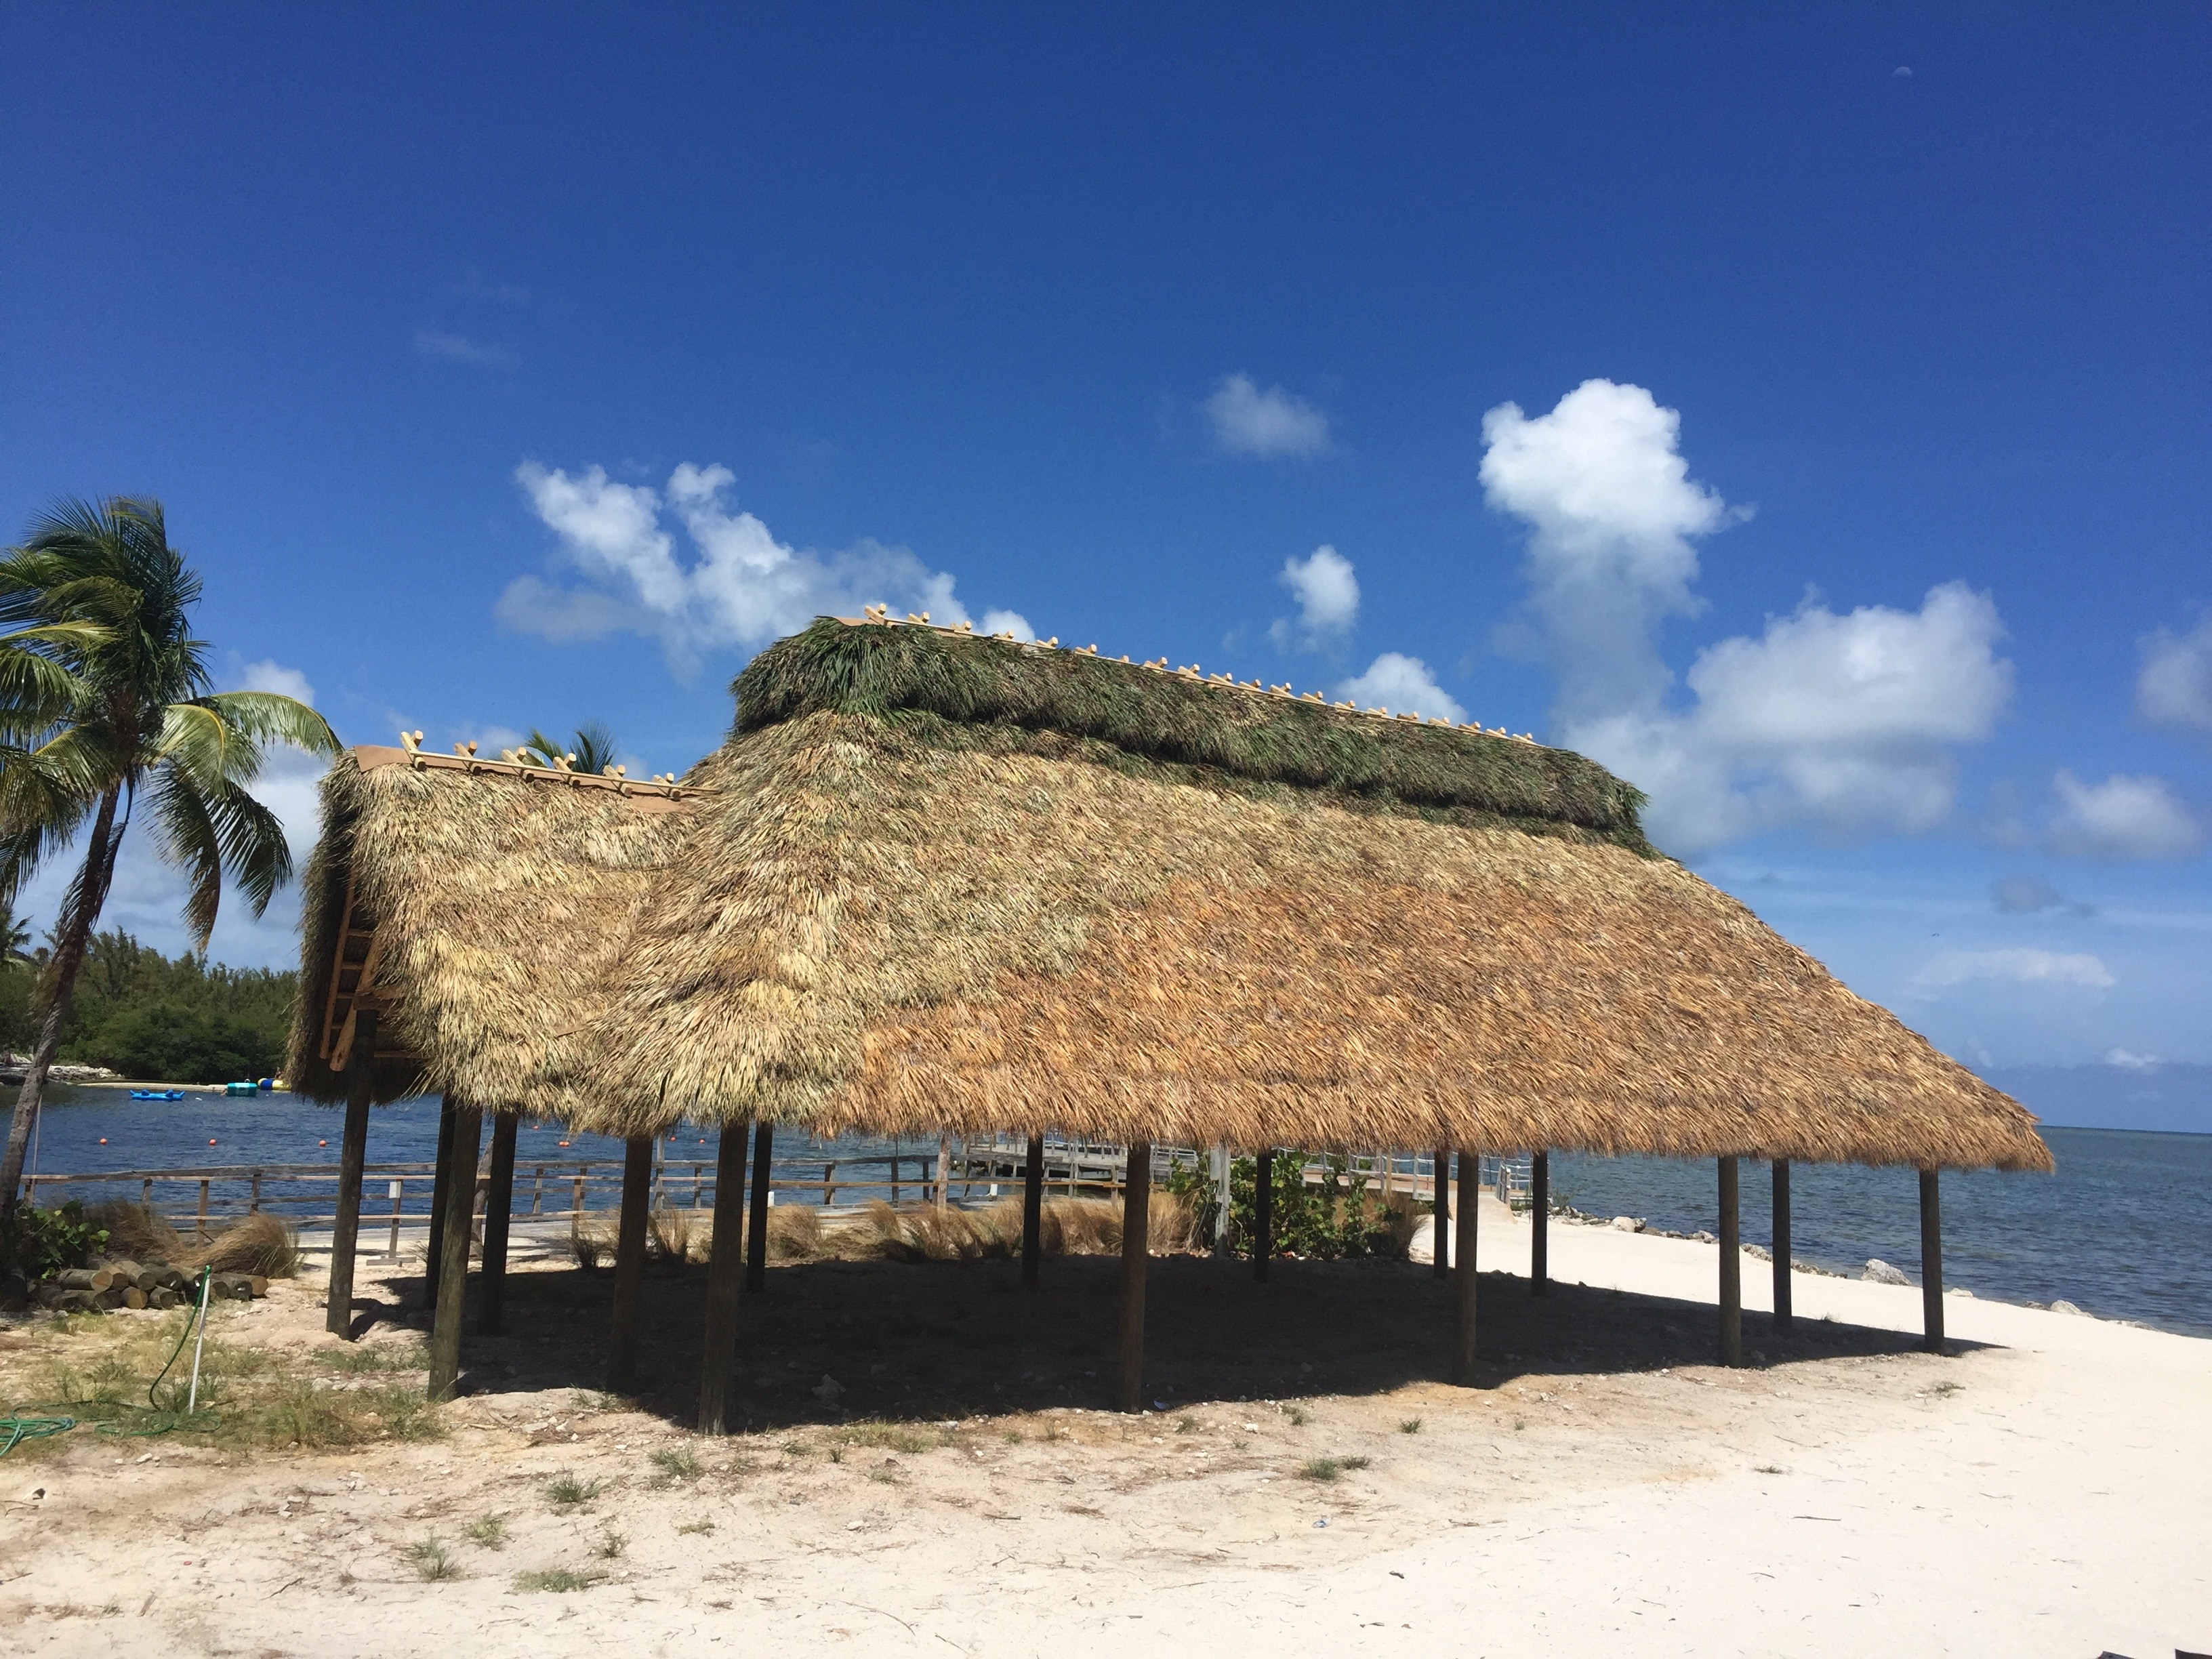 Tiki Hut on The Beach